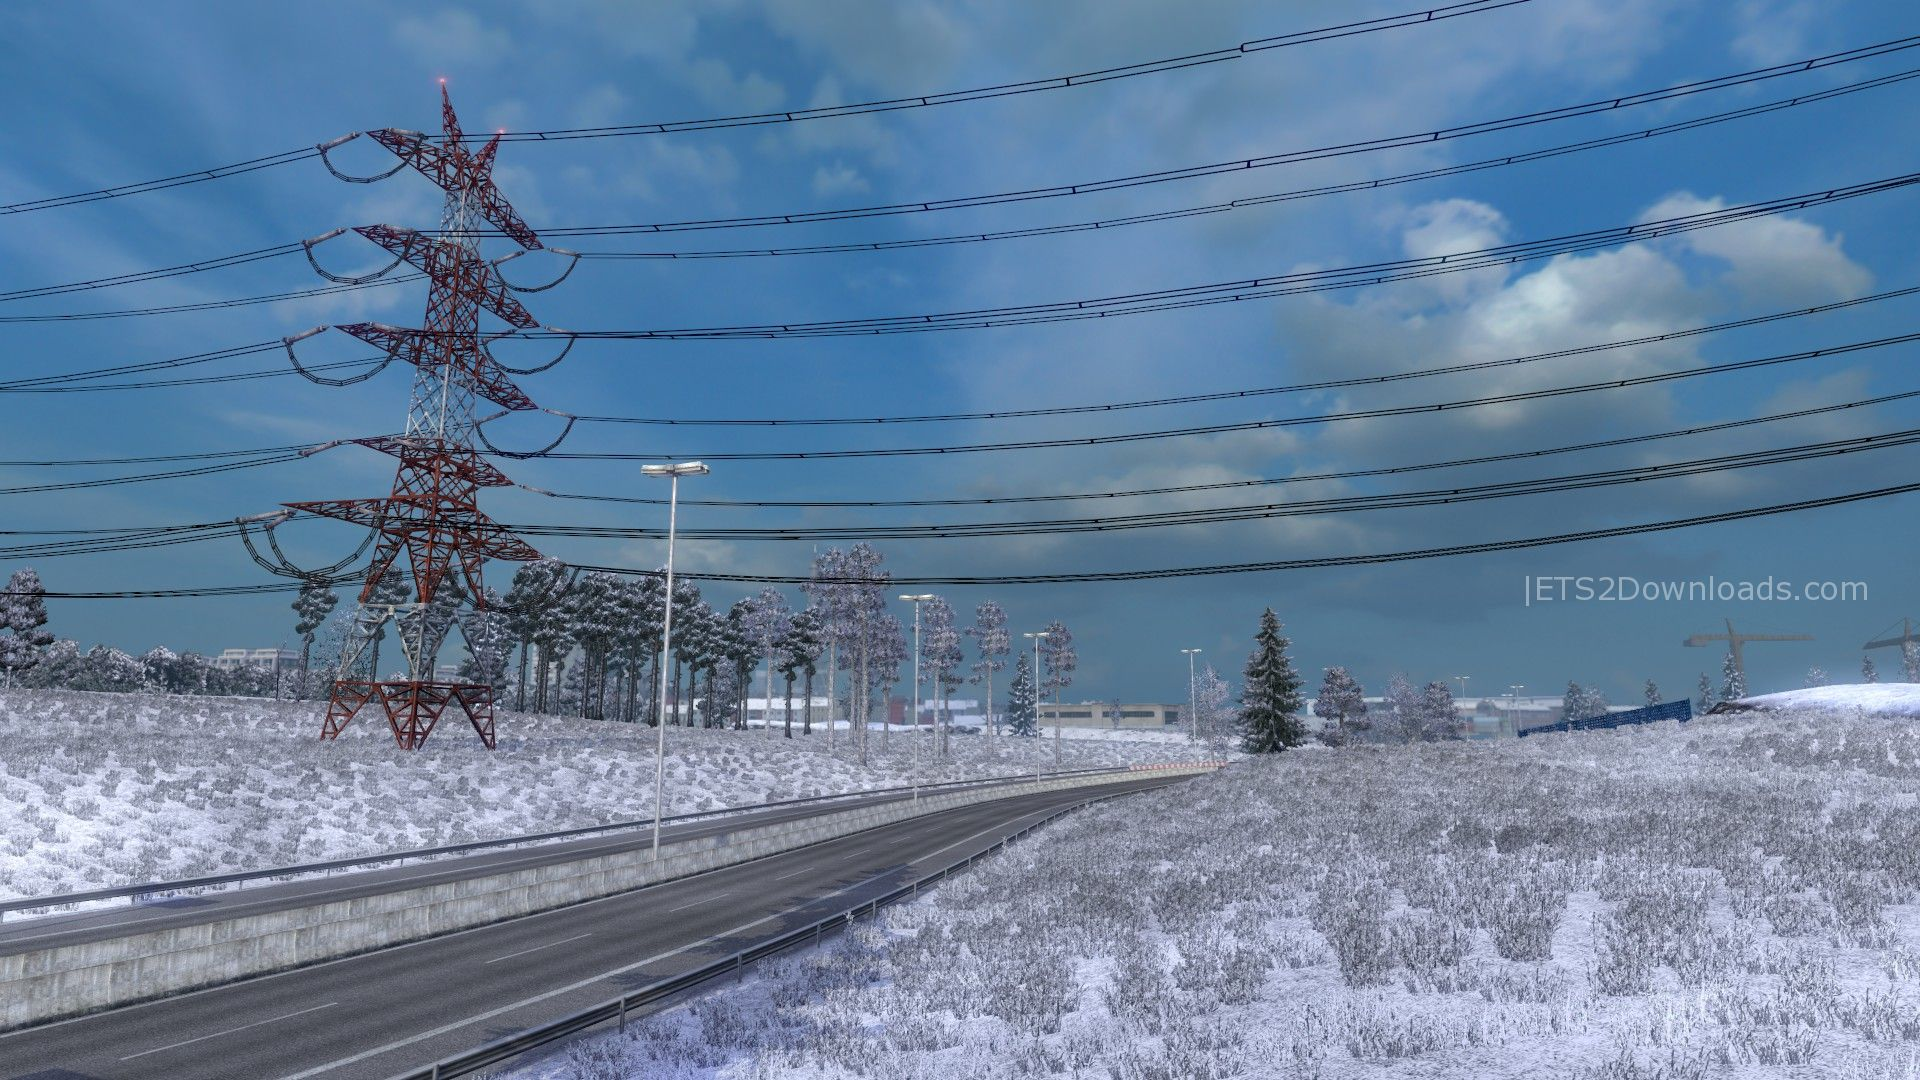 frosty-lateearly-winter-weather-mod-3